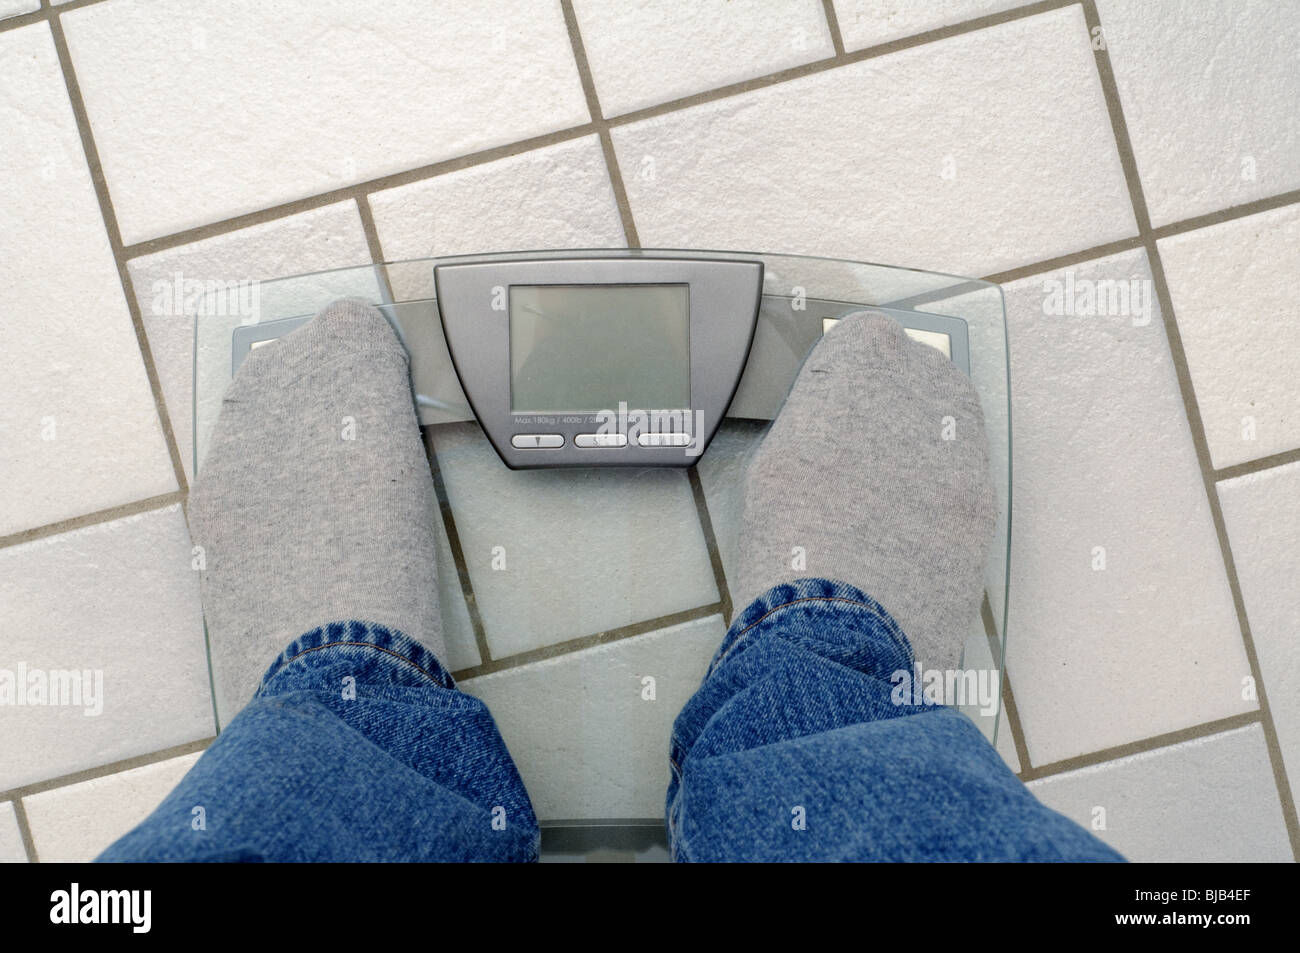 The jeans and socks of a man standing on a scale. Text window on scale free for your own text. - Stock Image